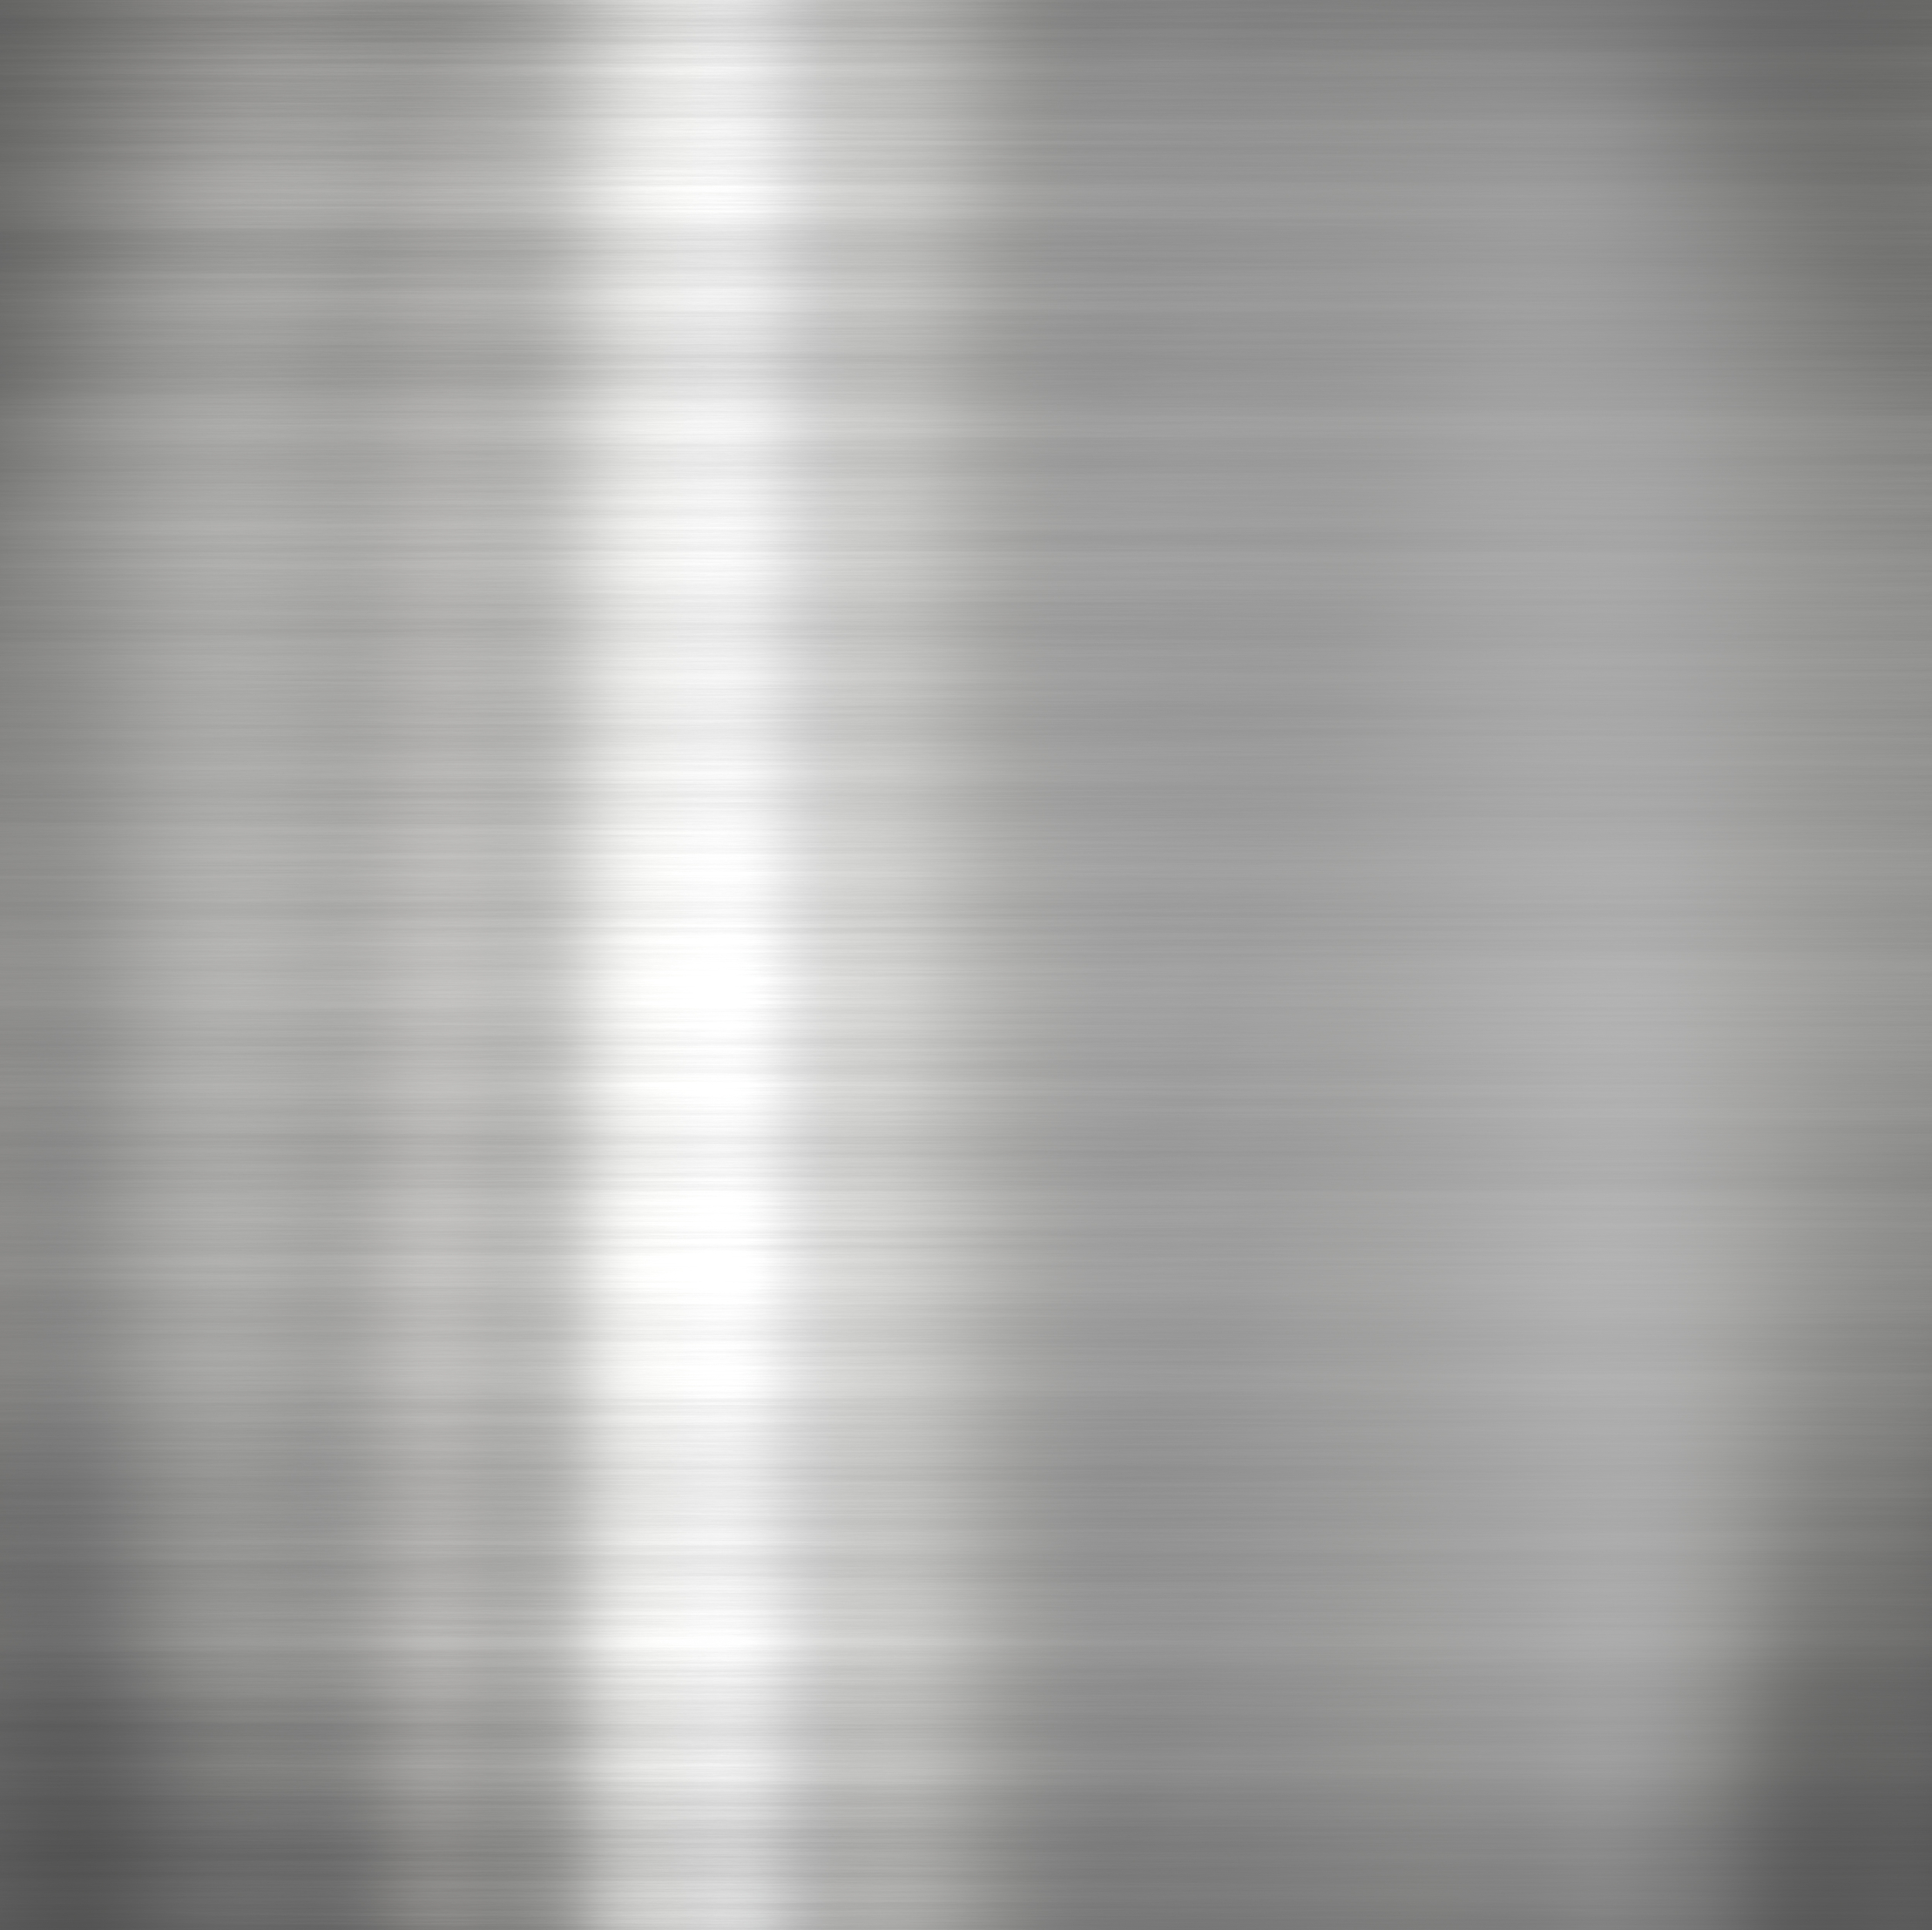 579866638142 Displaying 17 Images For Silver Texture Background 2218x2216